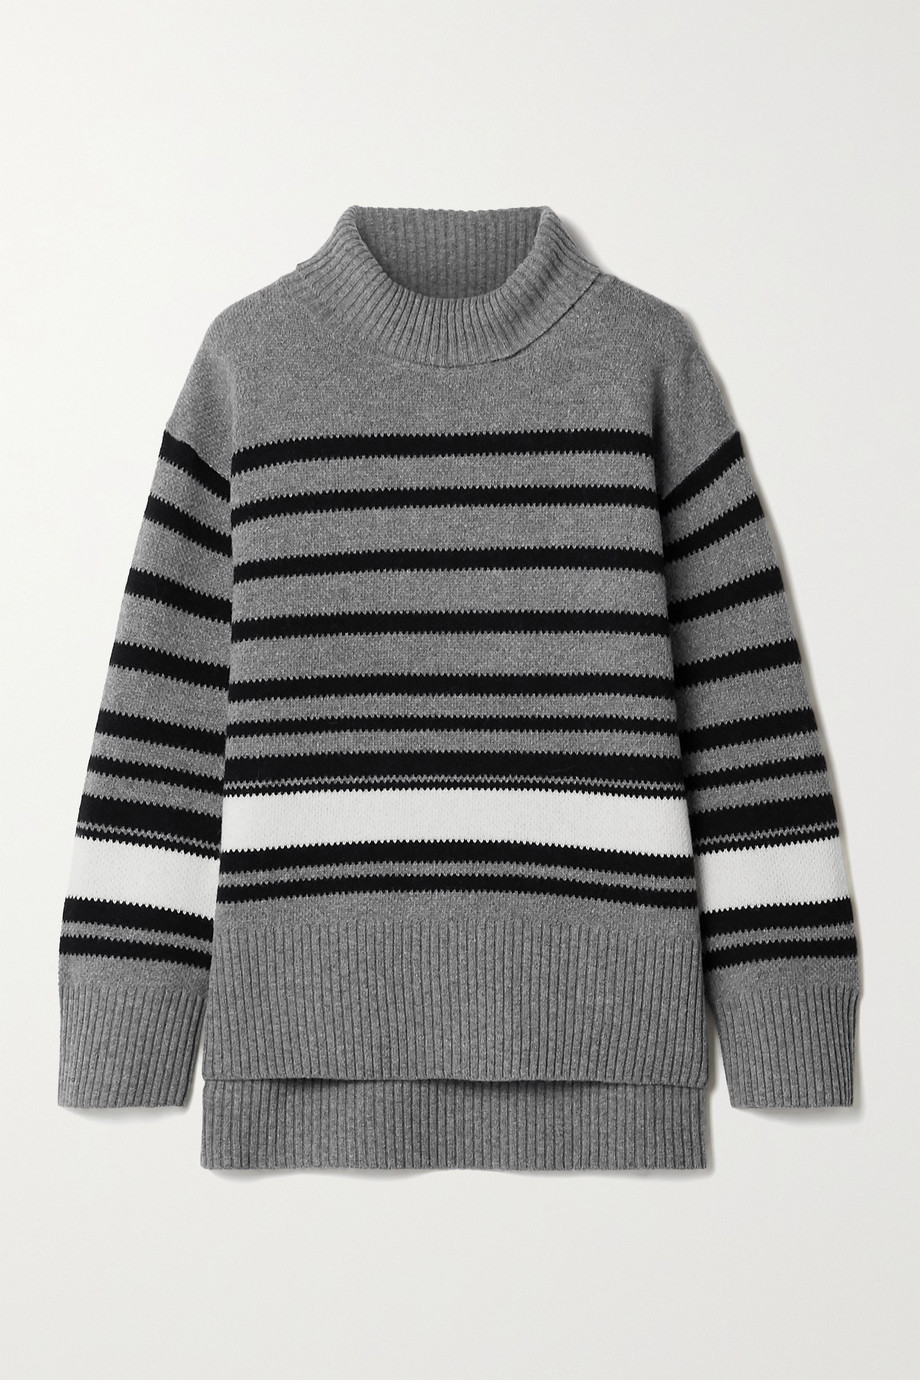 BY MALENE BIRGER Hedera oversized striped wool-blend turtleneck sweater